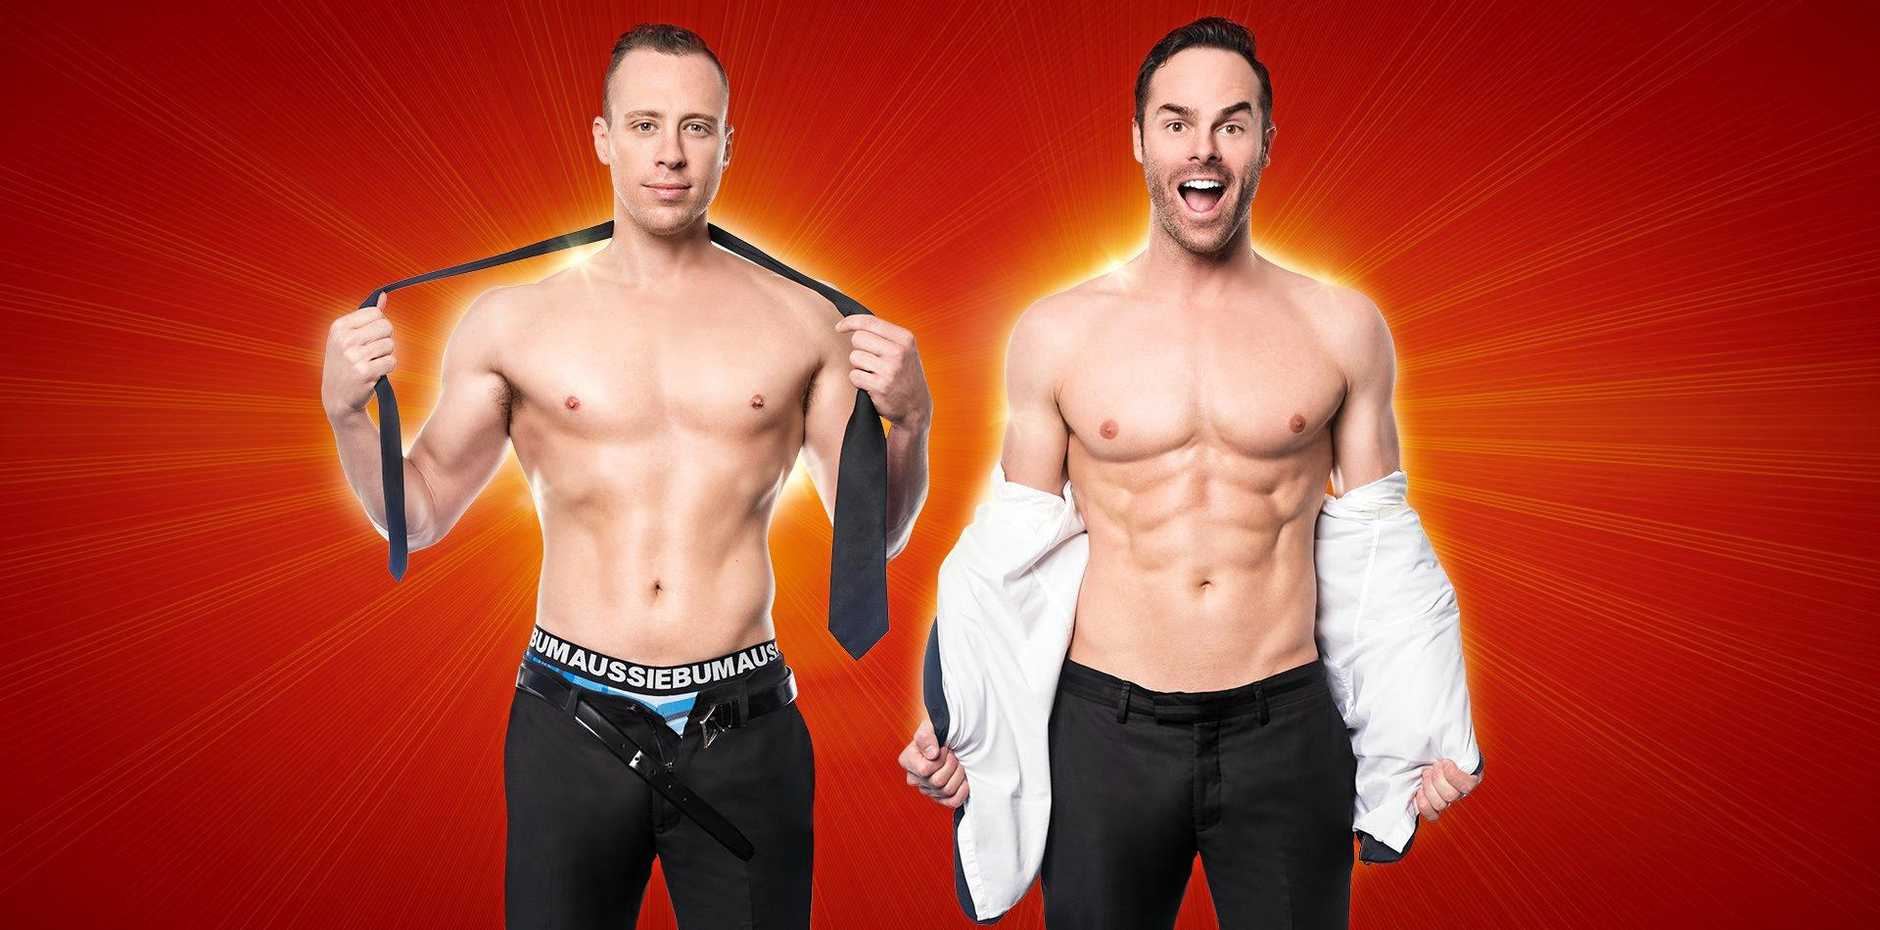 NAKED AMBITION: Christopher Wayne and Mike Tyler are The Naked Magicians.